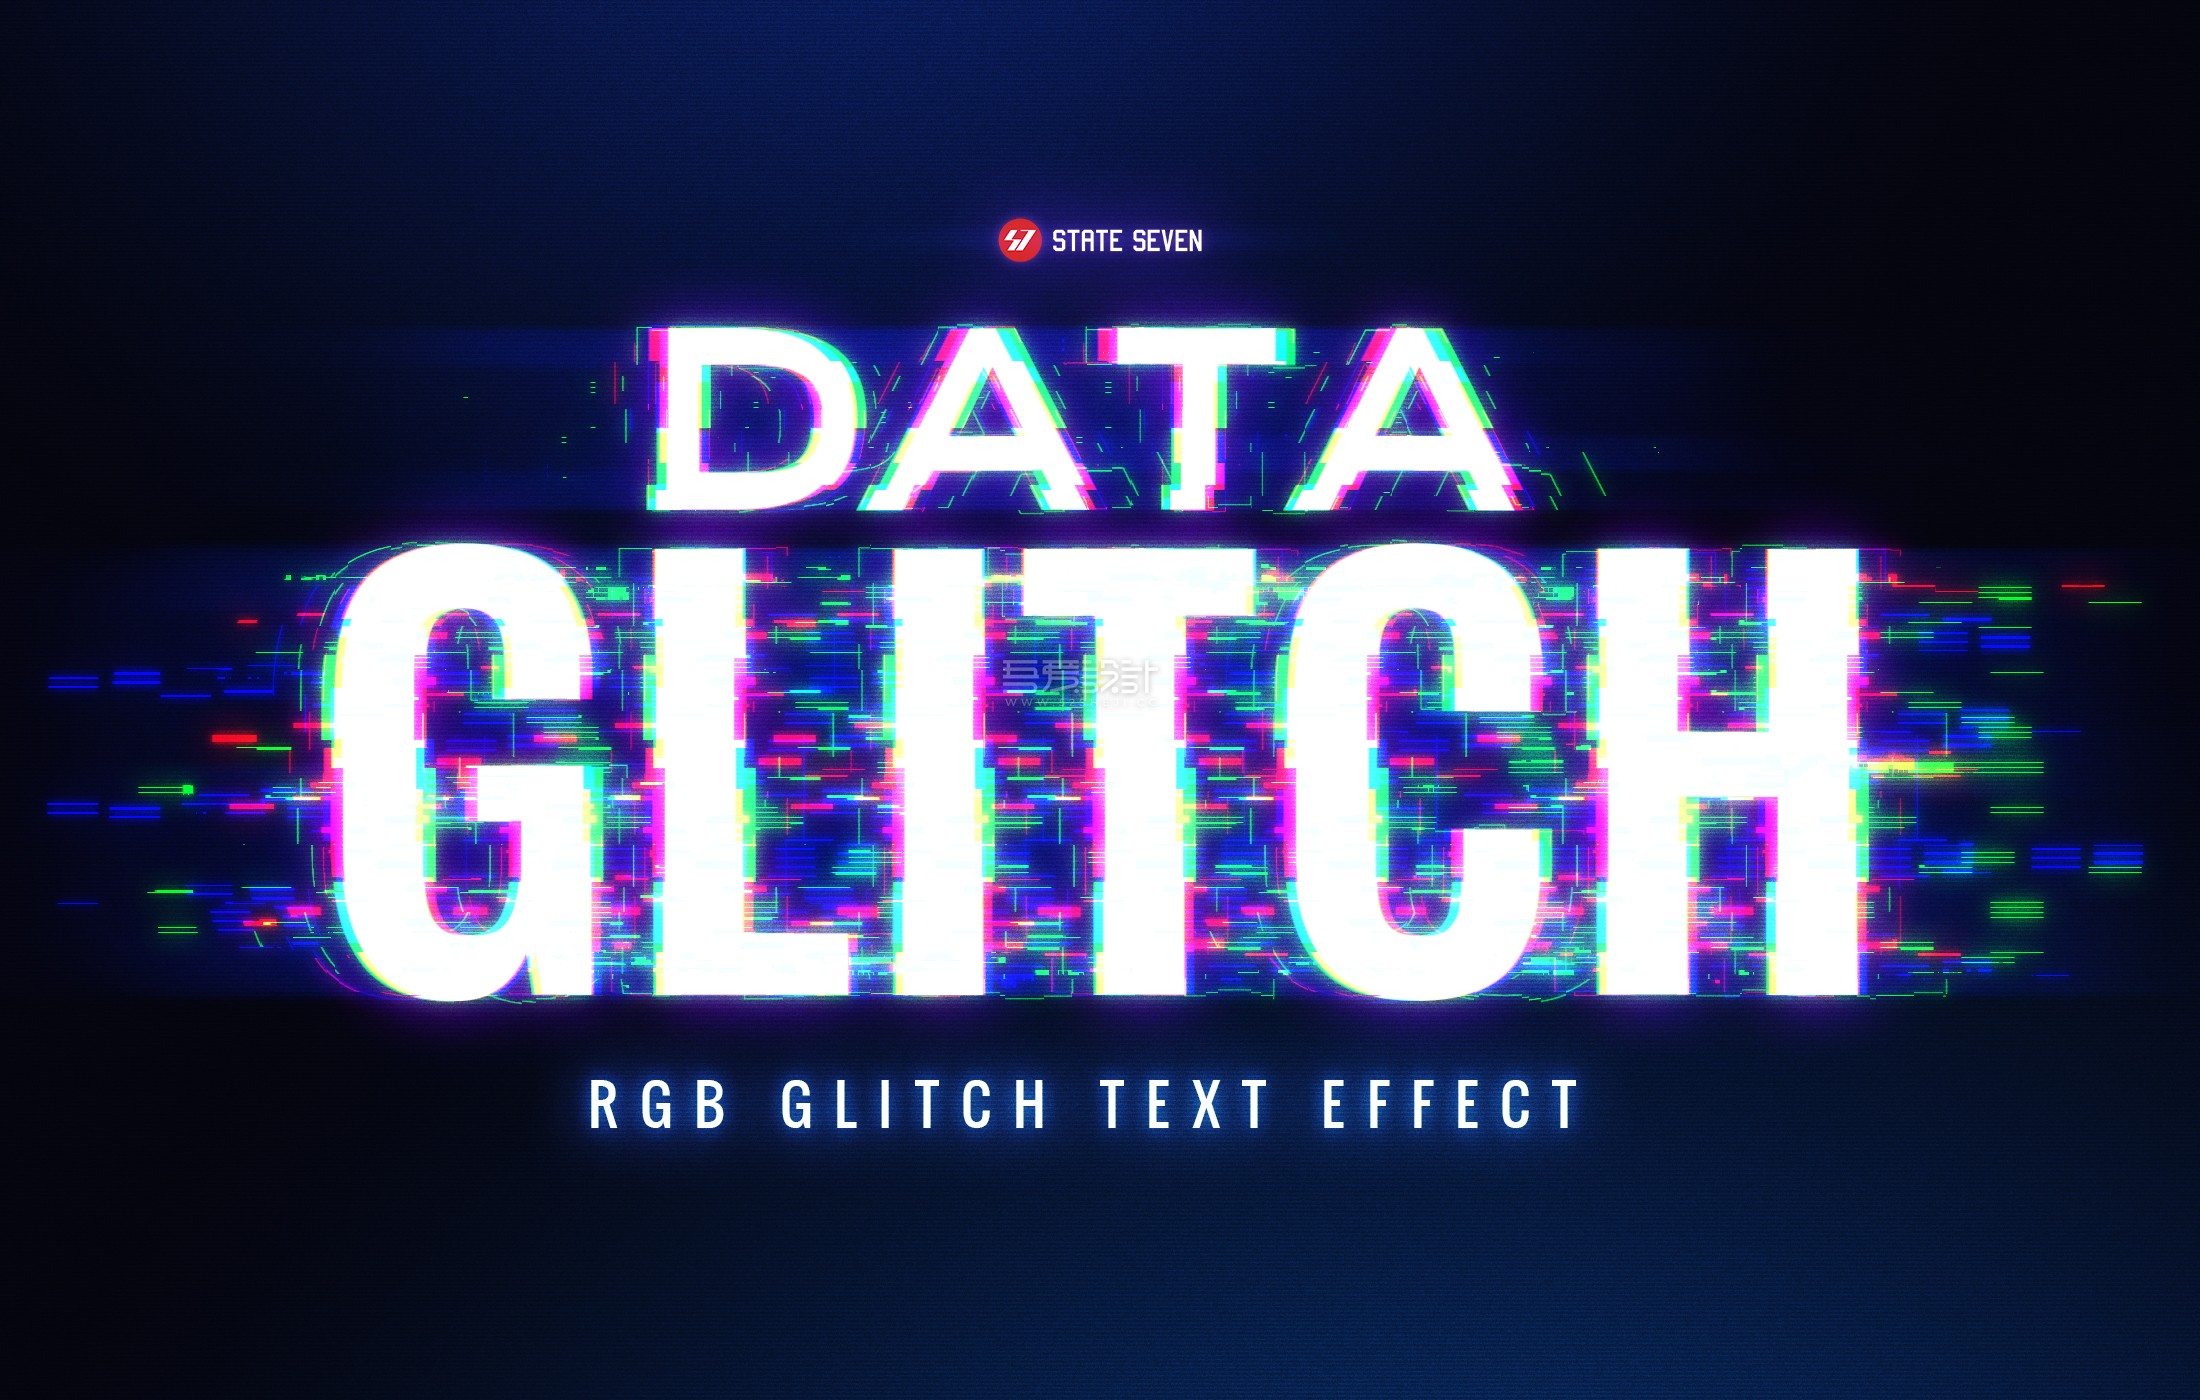 DATA GLITCH - text effect by STATE7